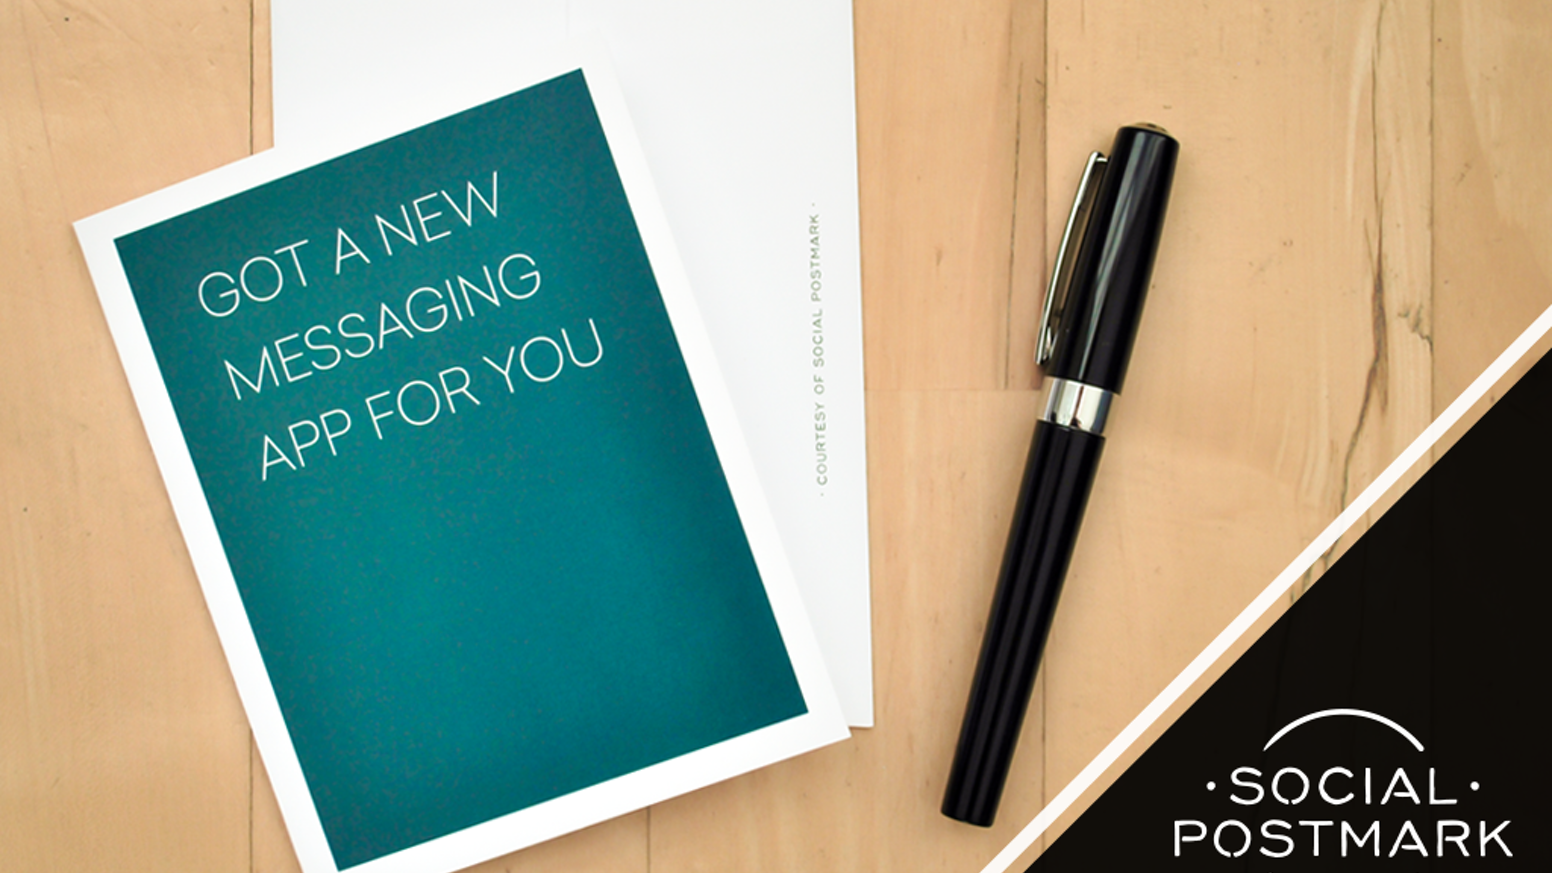 Social Postmark is a box set of 20 provocative greeting cards, designed to meet the needs of any social situation.